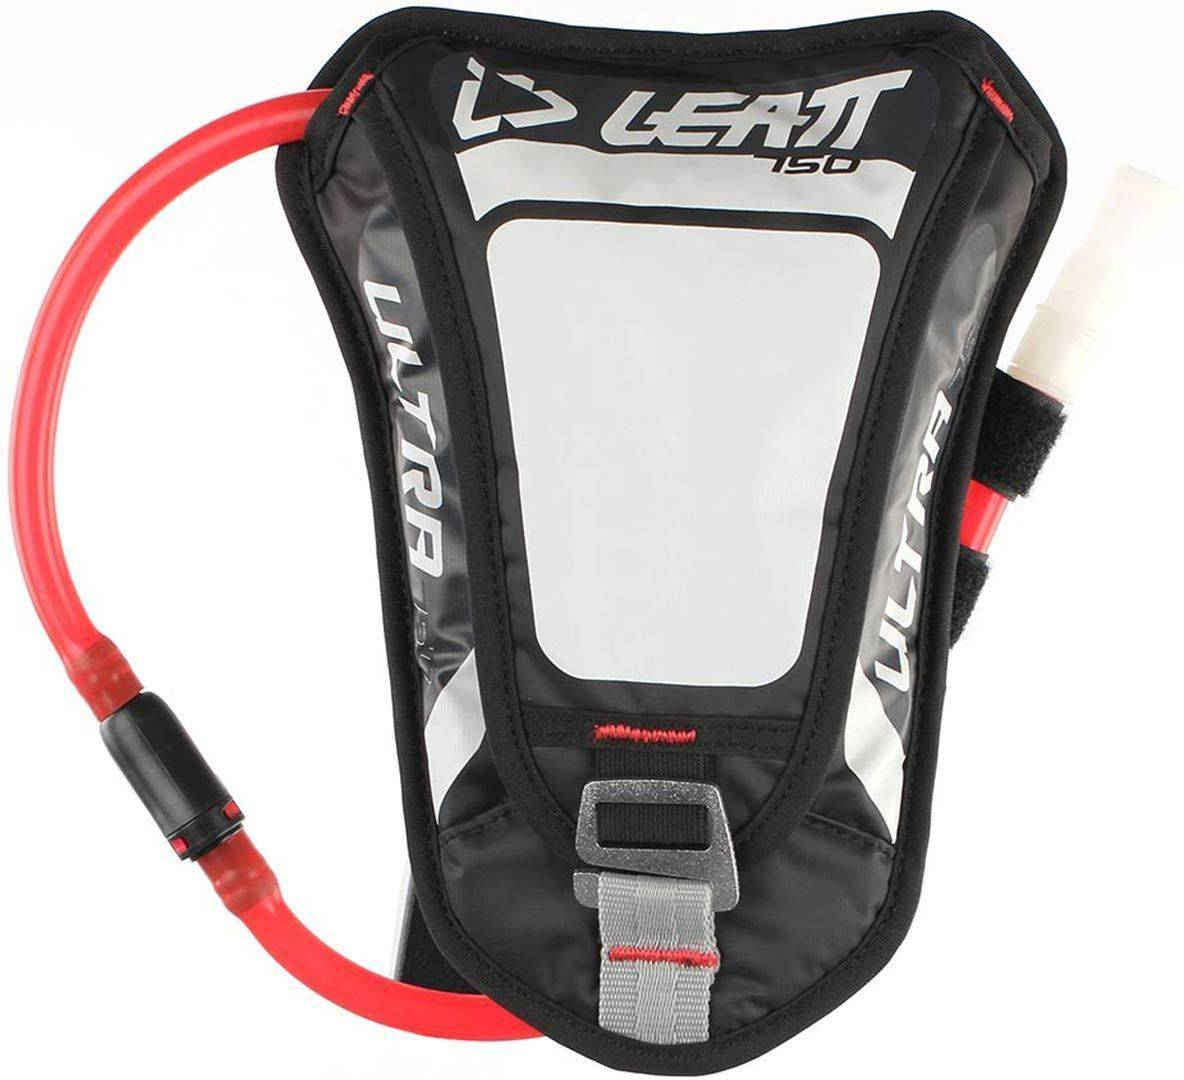 Leatt Ultra 750 HF 0,75L Hydration Backpack White One Size